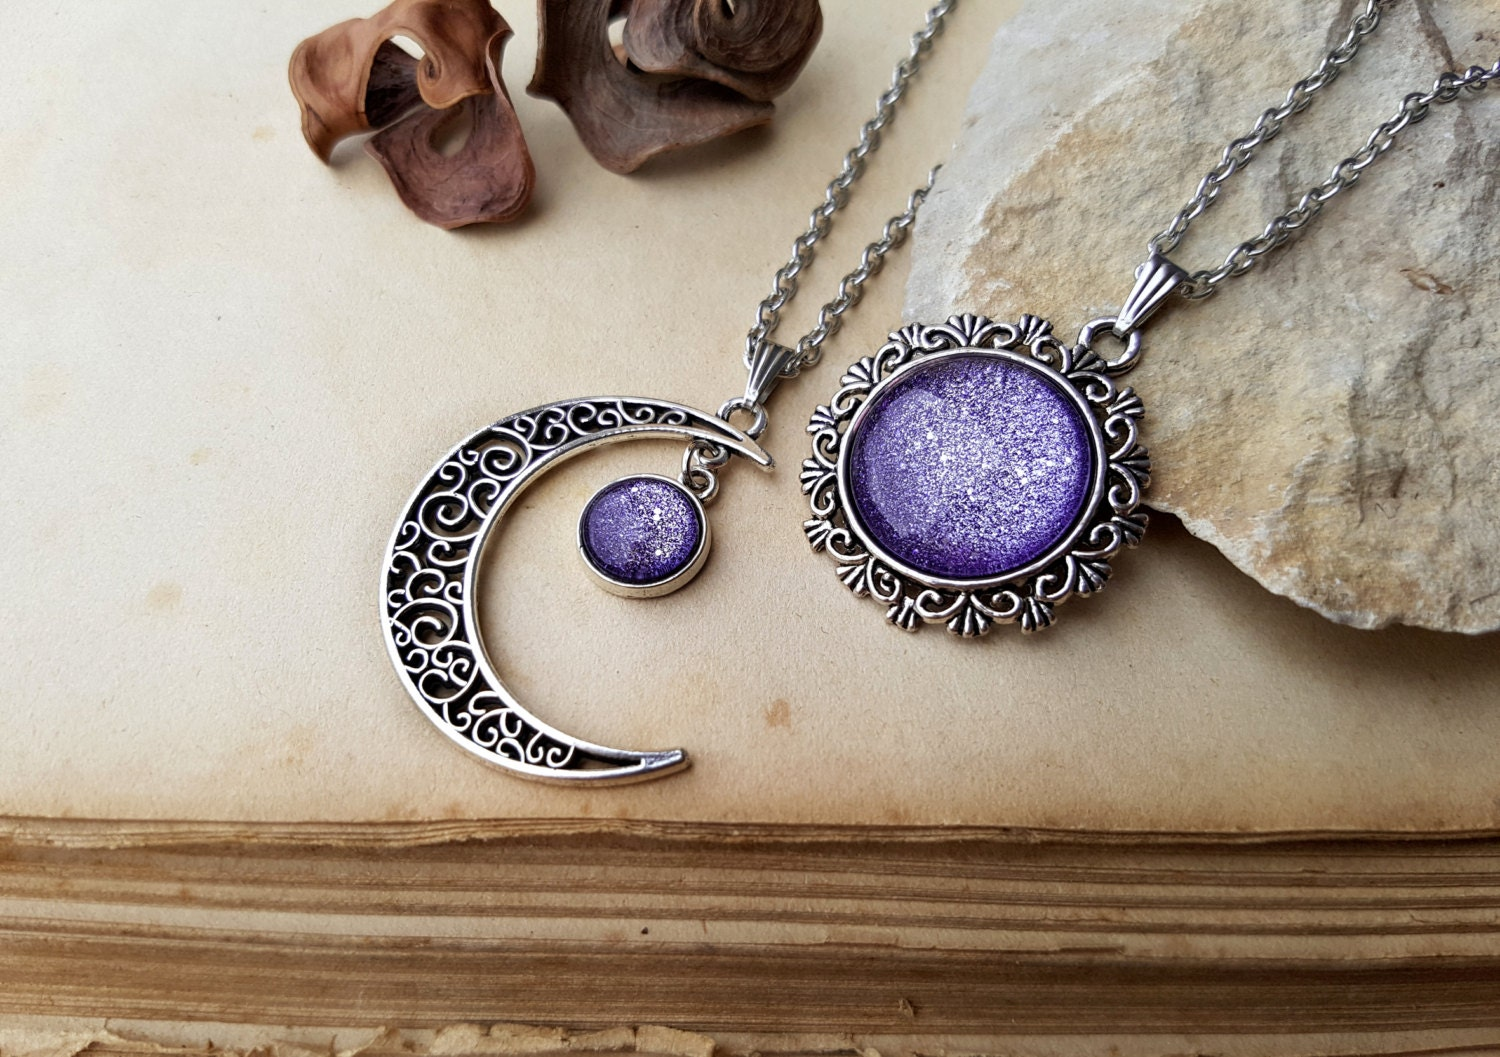 2 Sun and Moon Necklaces matching necklaces 2 friends